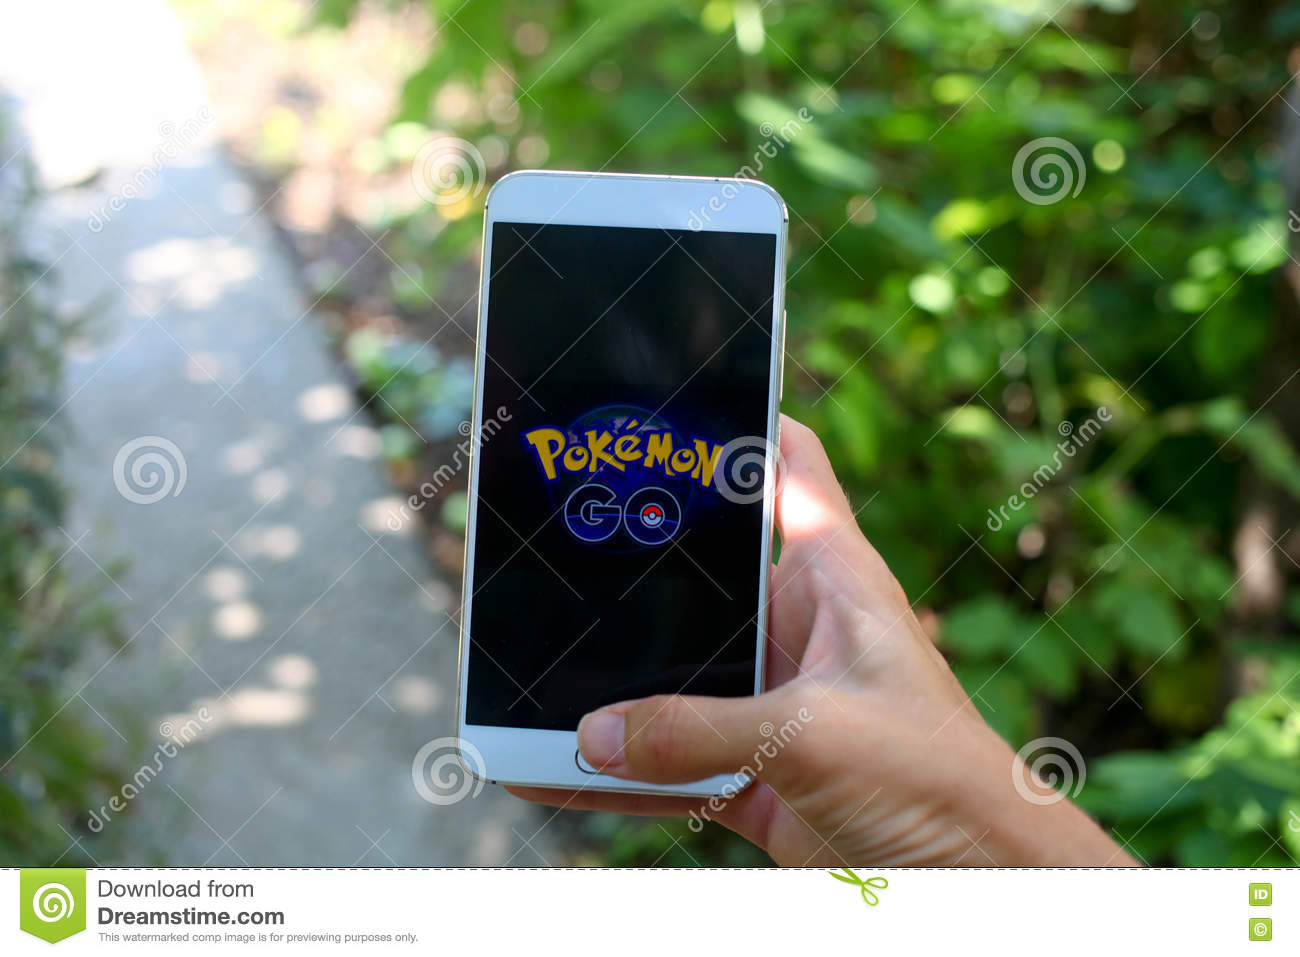 Krasnodar Russia On July 26 2016 Pokemon Go Is A Location Editorial Image Image Of Editorial Game 75003415